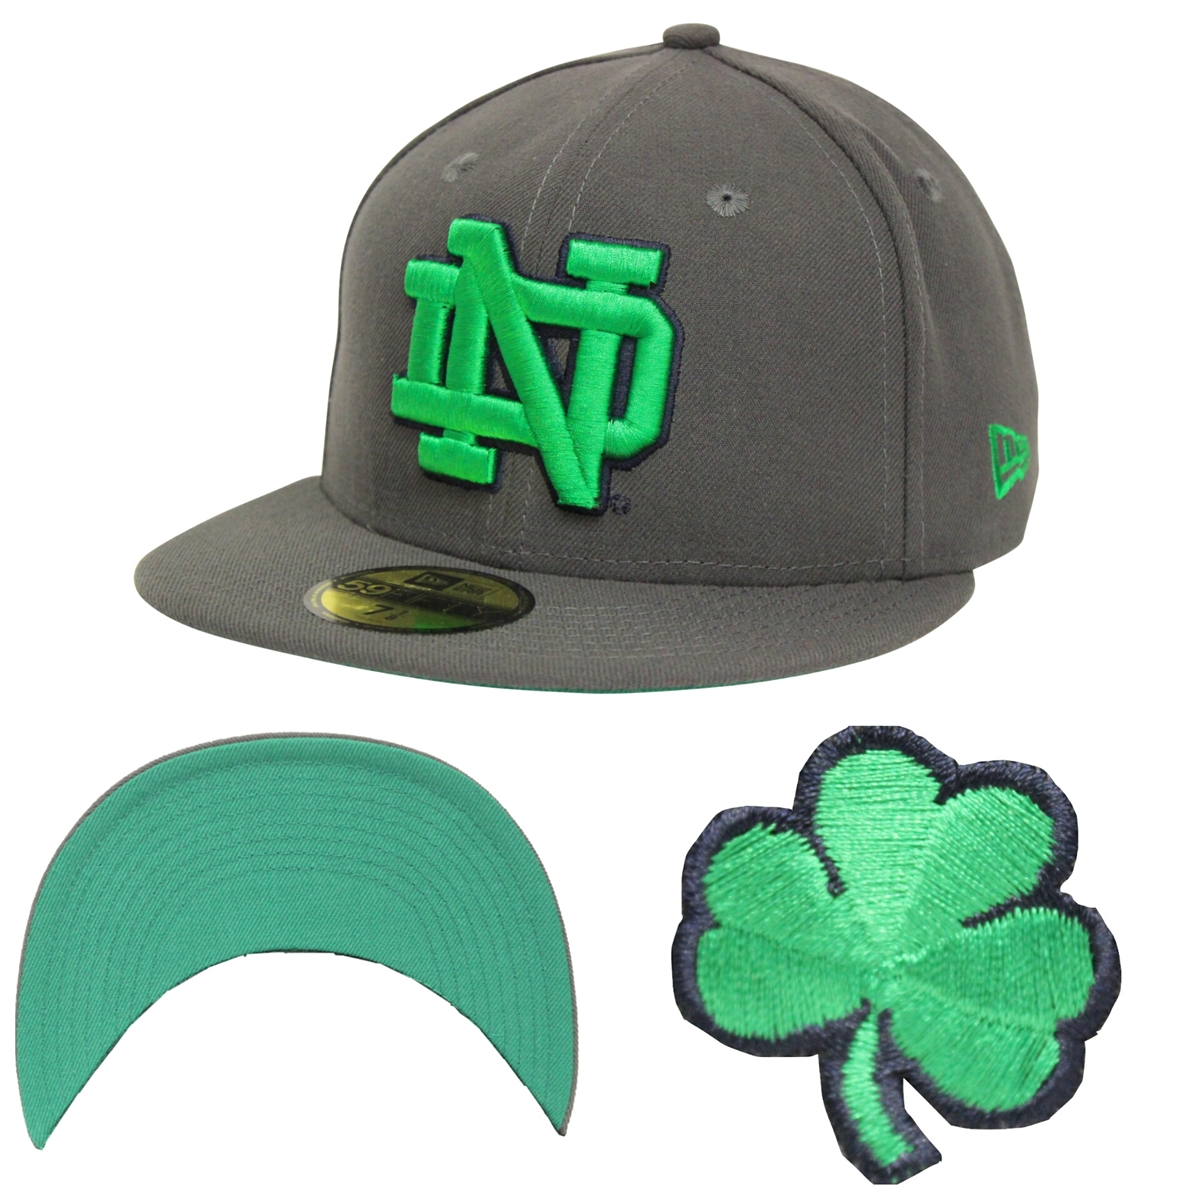 New Era 59Fifty Notre Dame Fighting Irish Graphite Fitted Cap c4197b129c3